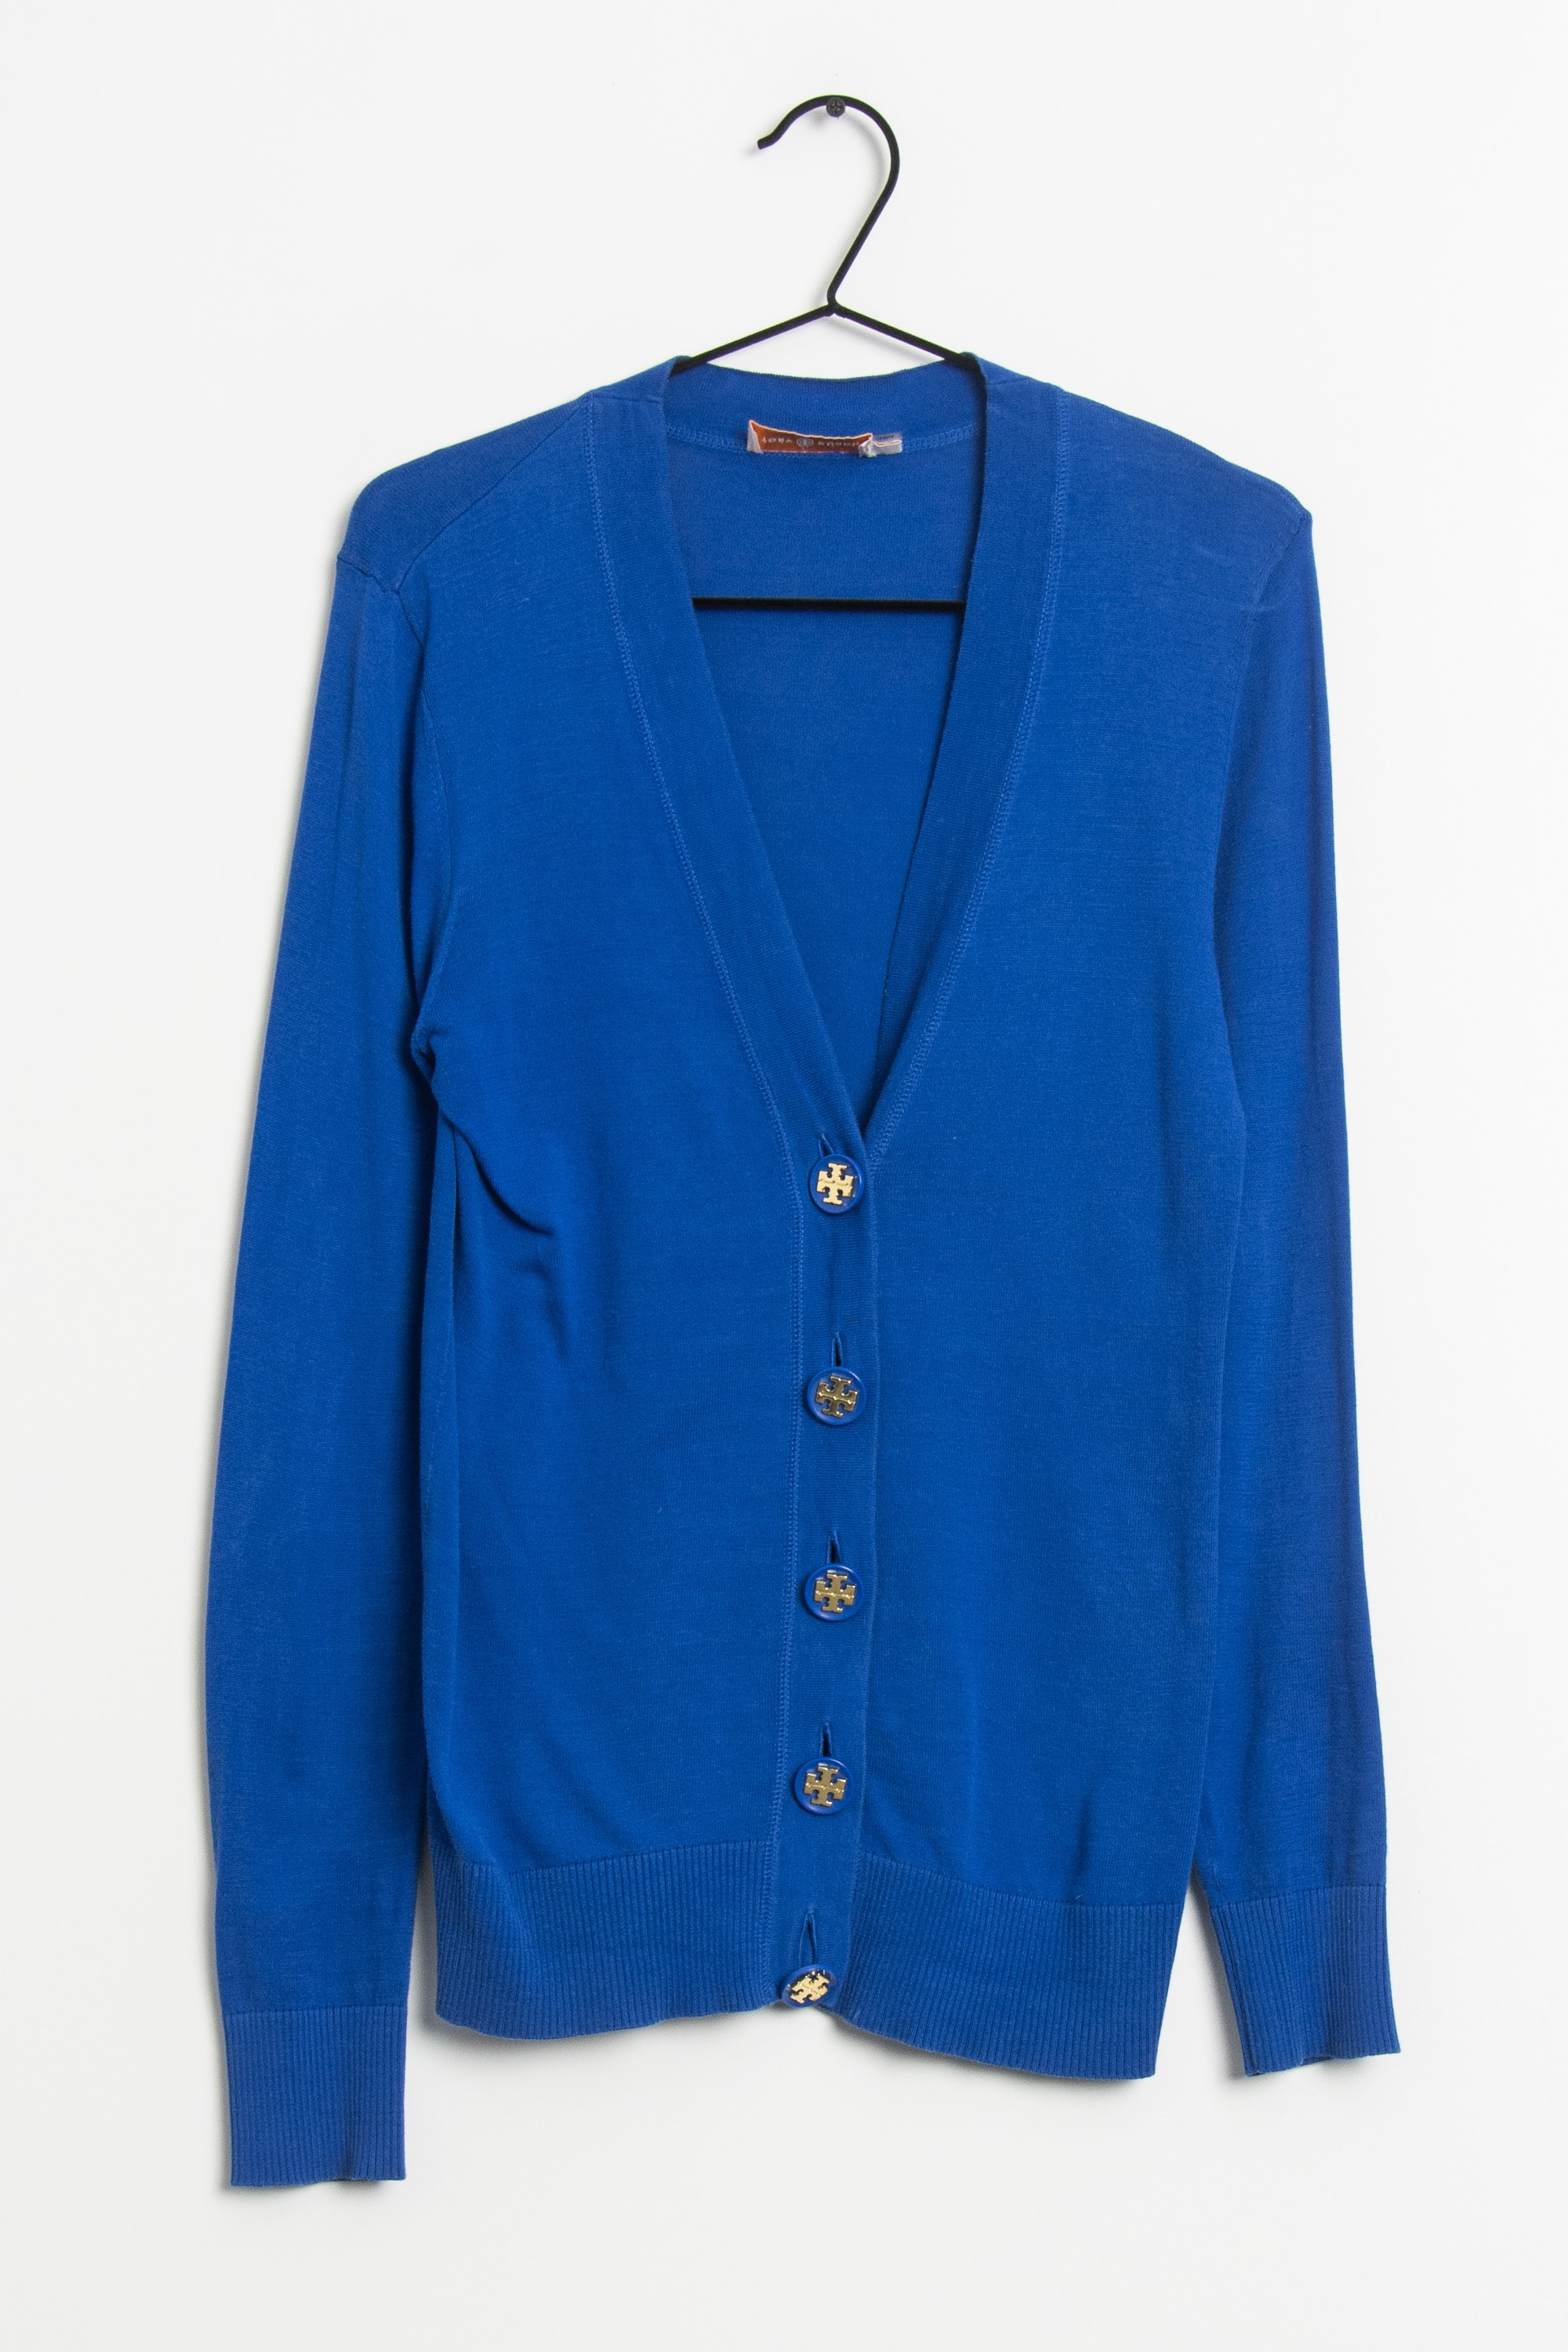 Tory Burch Strickjacke Blau Gr.S